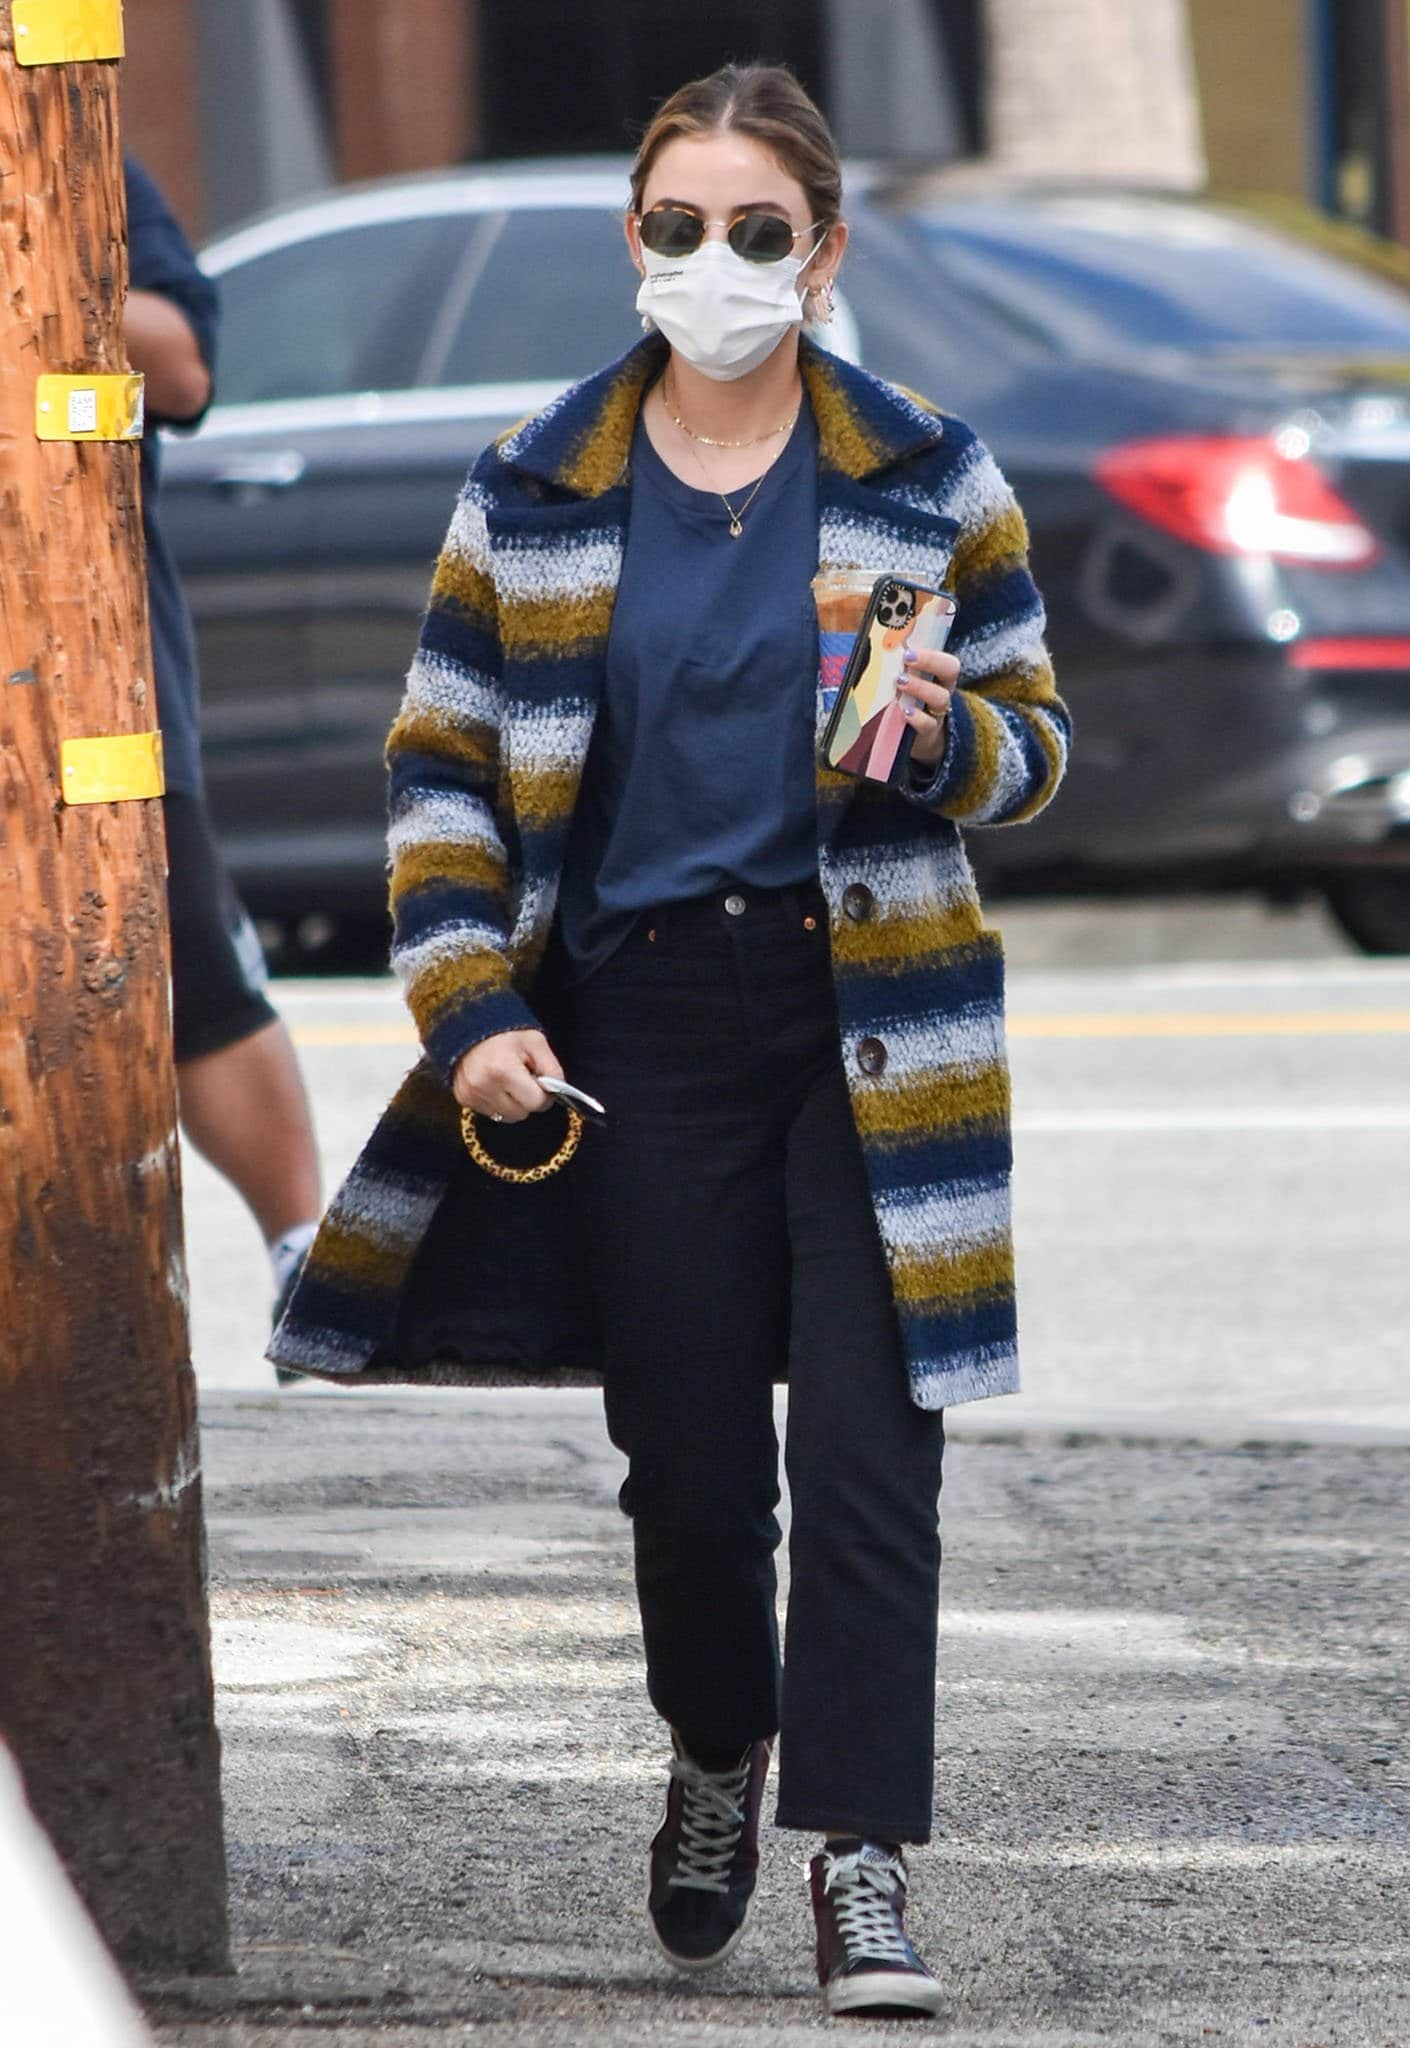 Lucy Hale grabs iced coffee from a neighborly coffee shop in Los Angeles